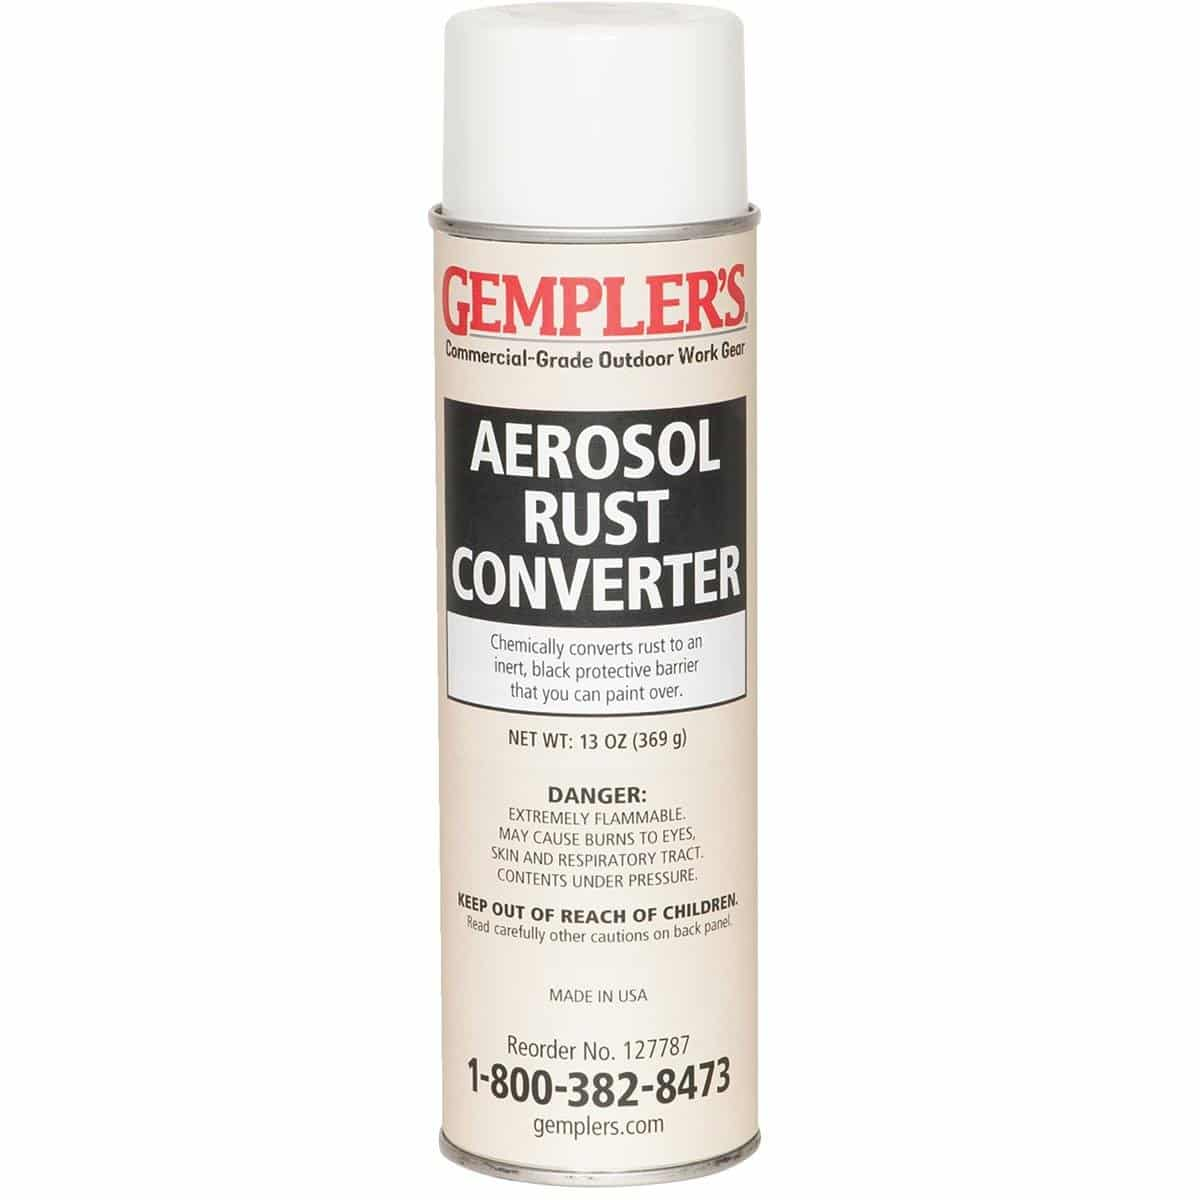 GEMPLER'S Fast Rust Converter and Primer